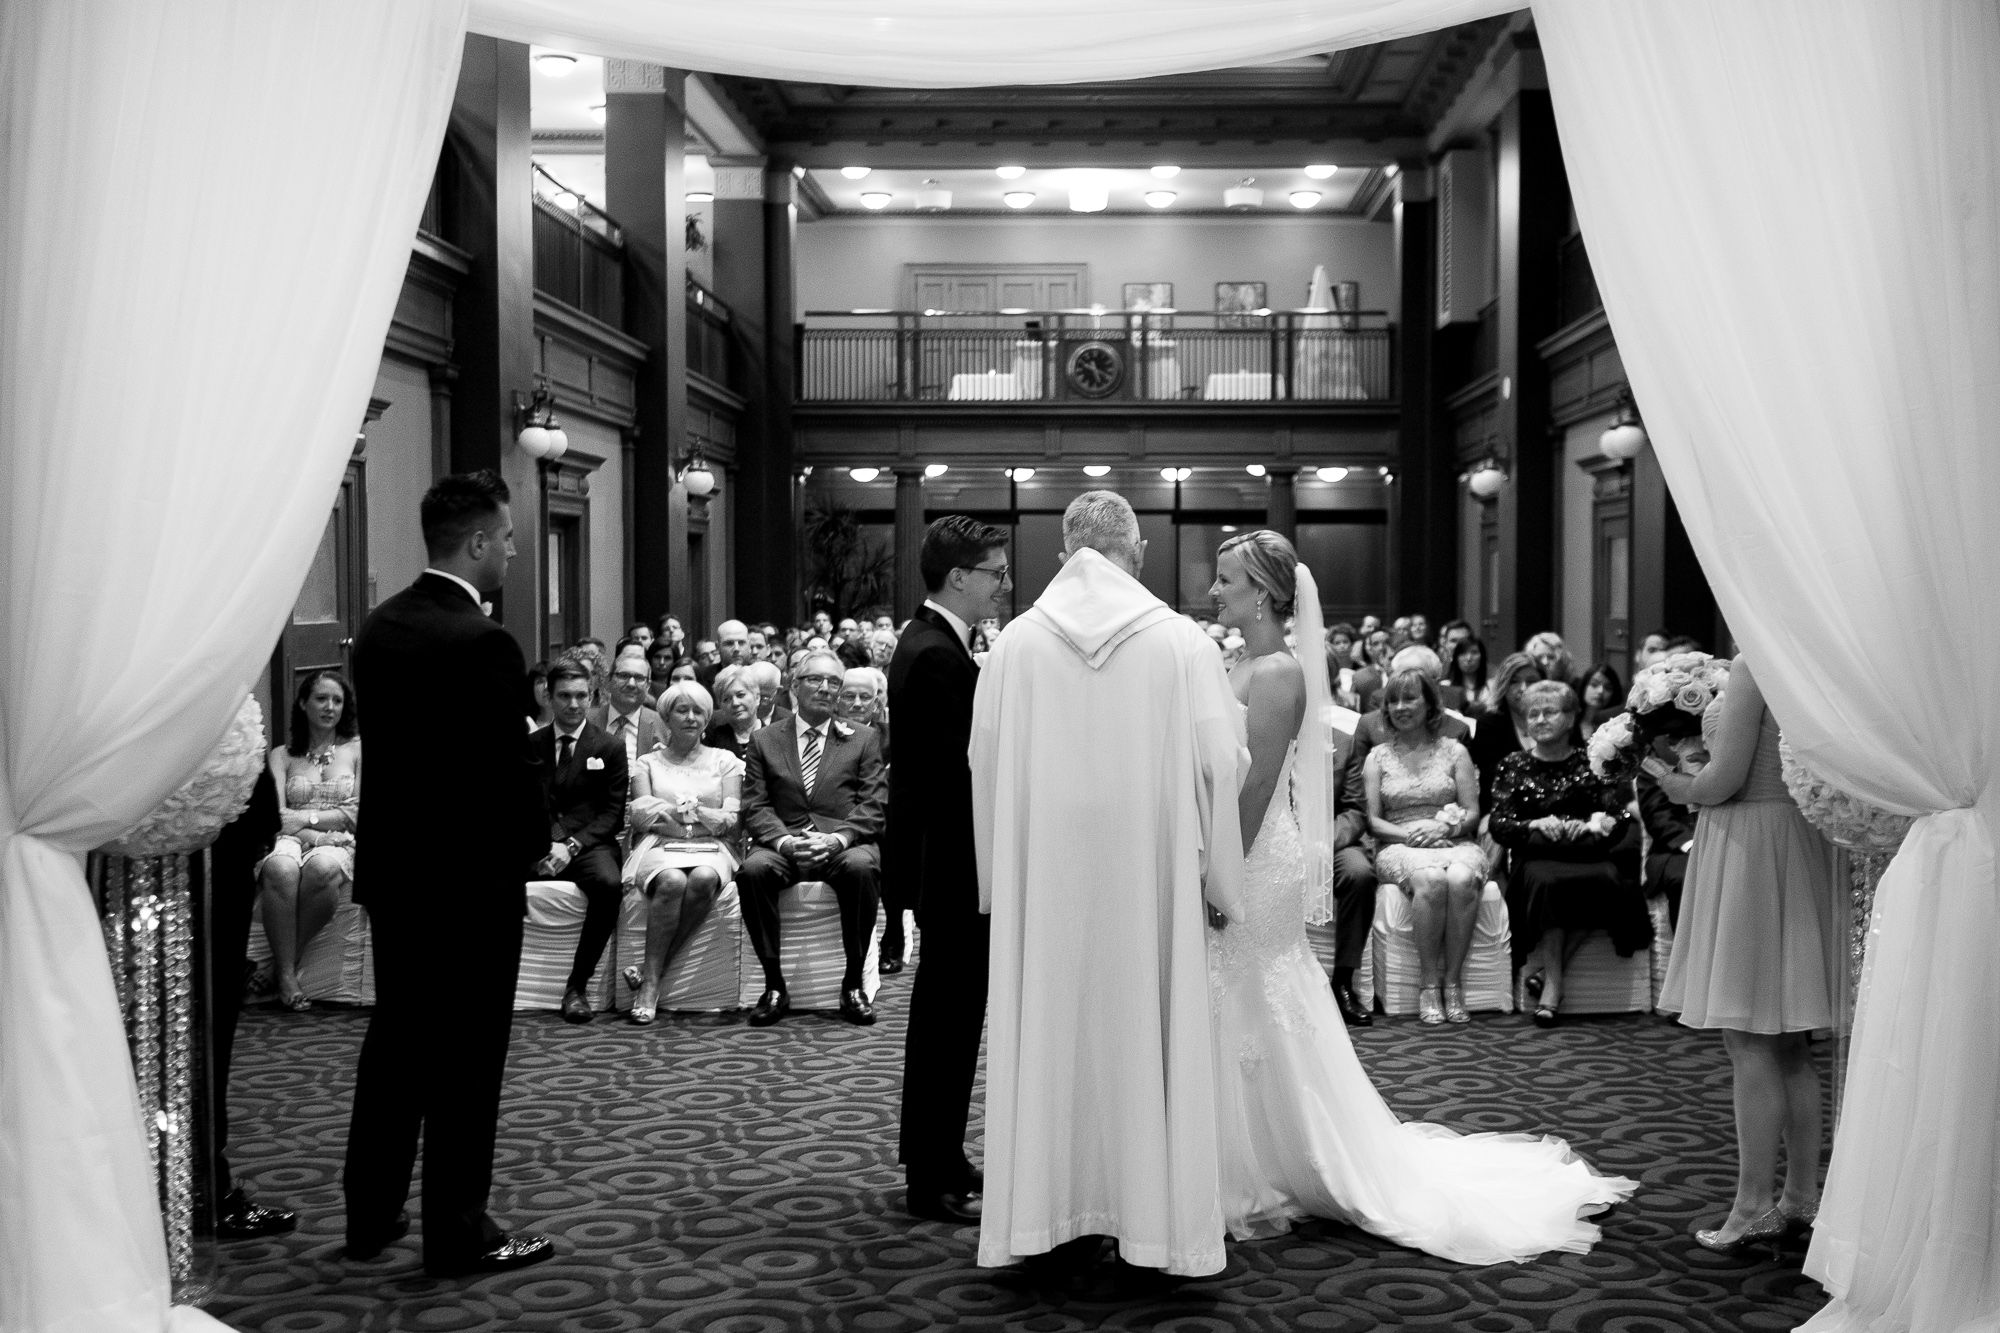 Danielle + Eric exchange their wedding vows as the guests look on during their ceremony at One King West Hotel In Toronto.